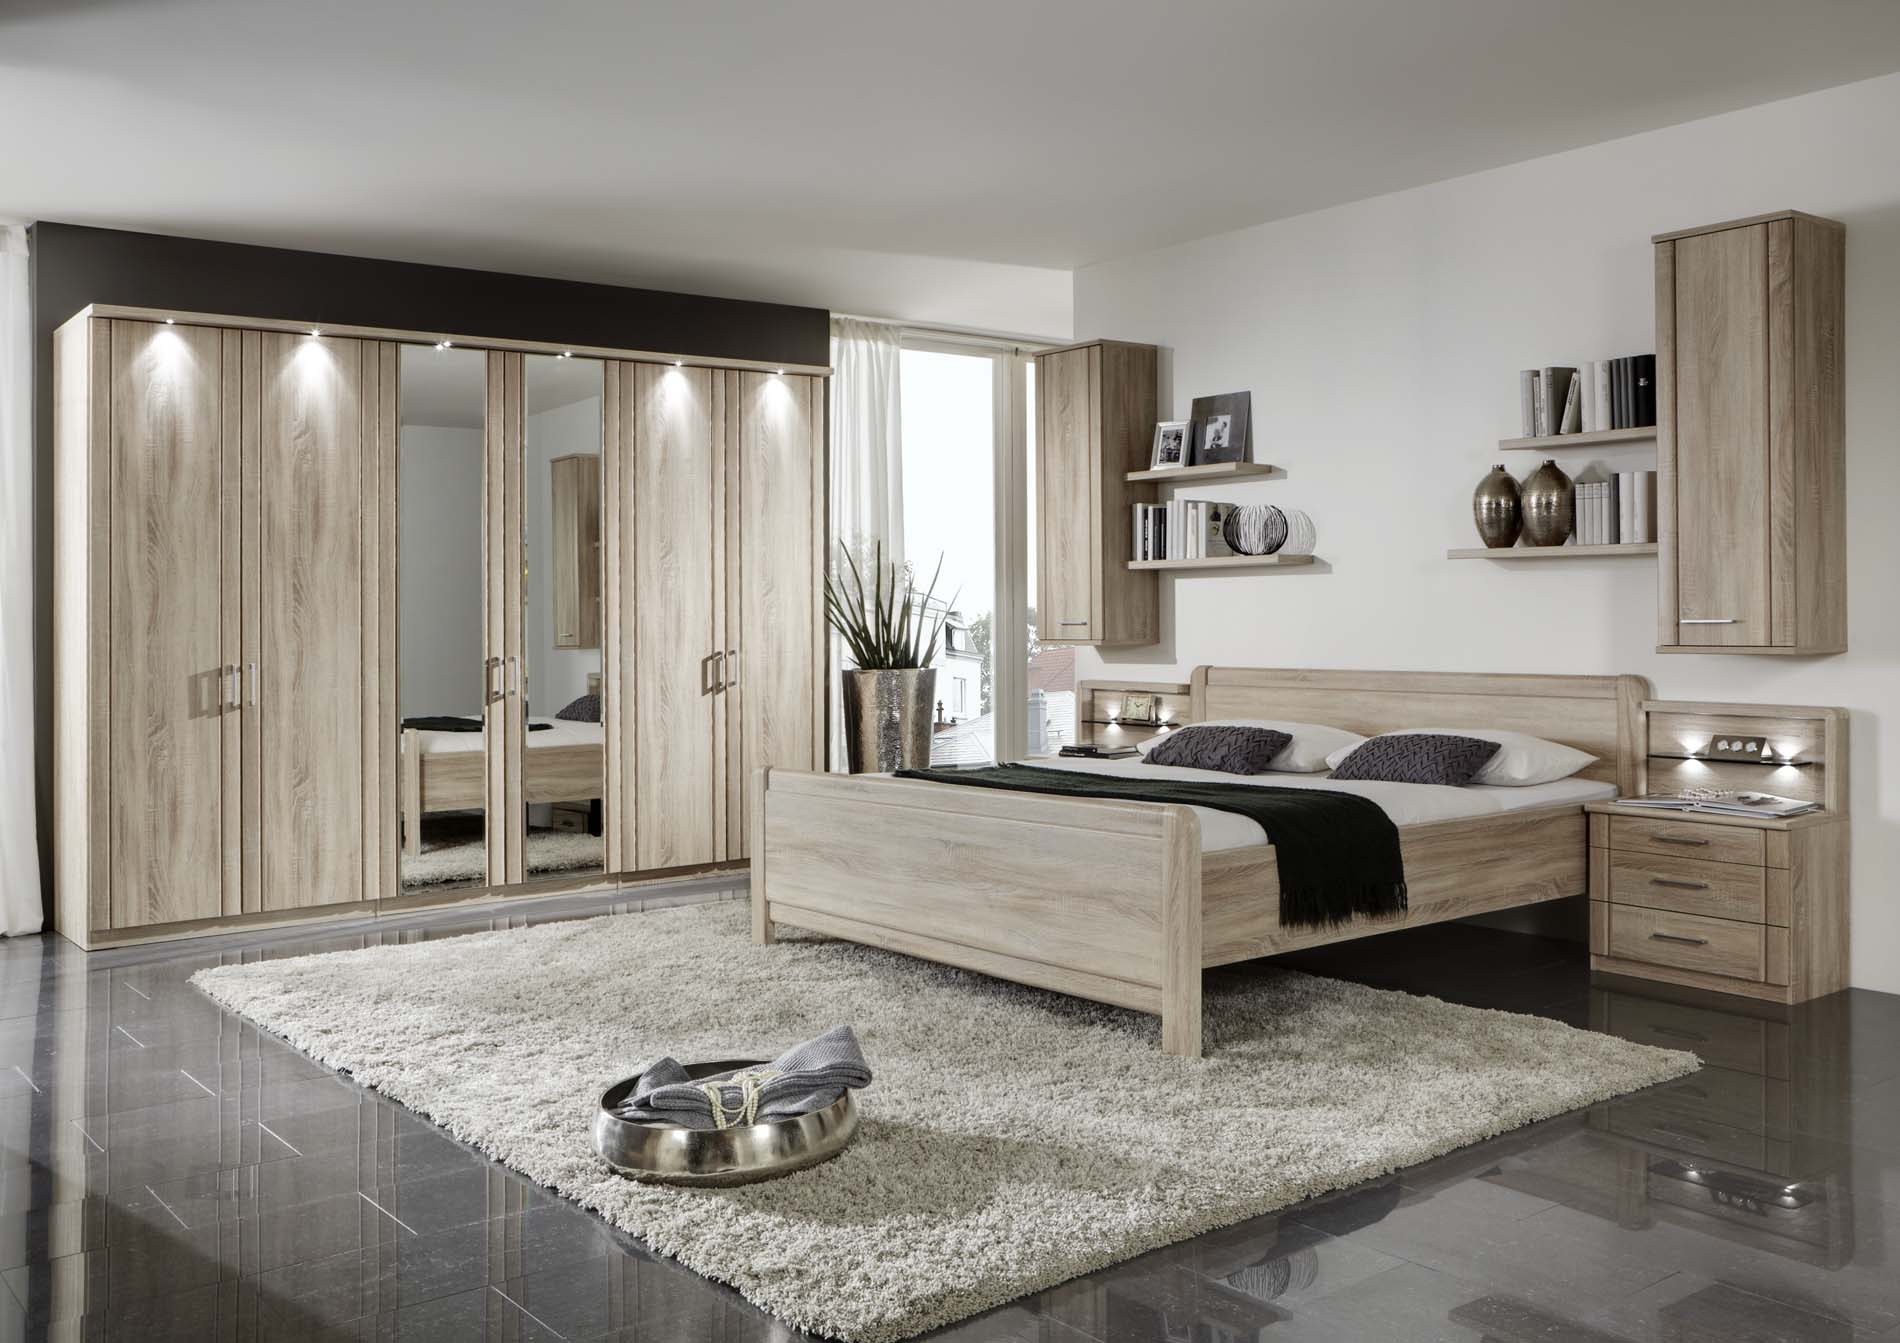 Wiemann Valencia Bedroom Set In Rustic Oak Modish Furnishing